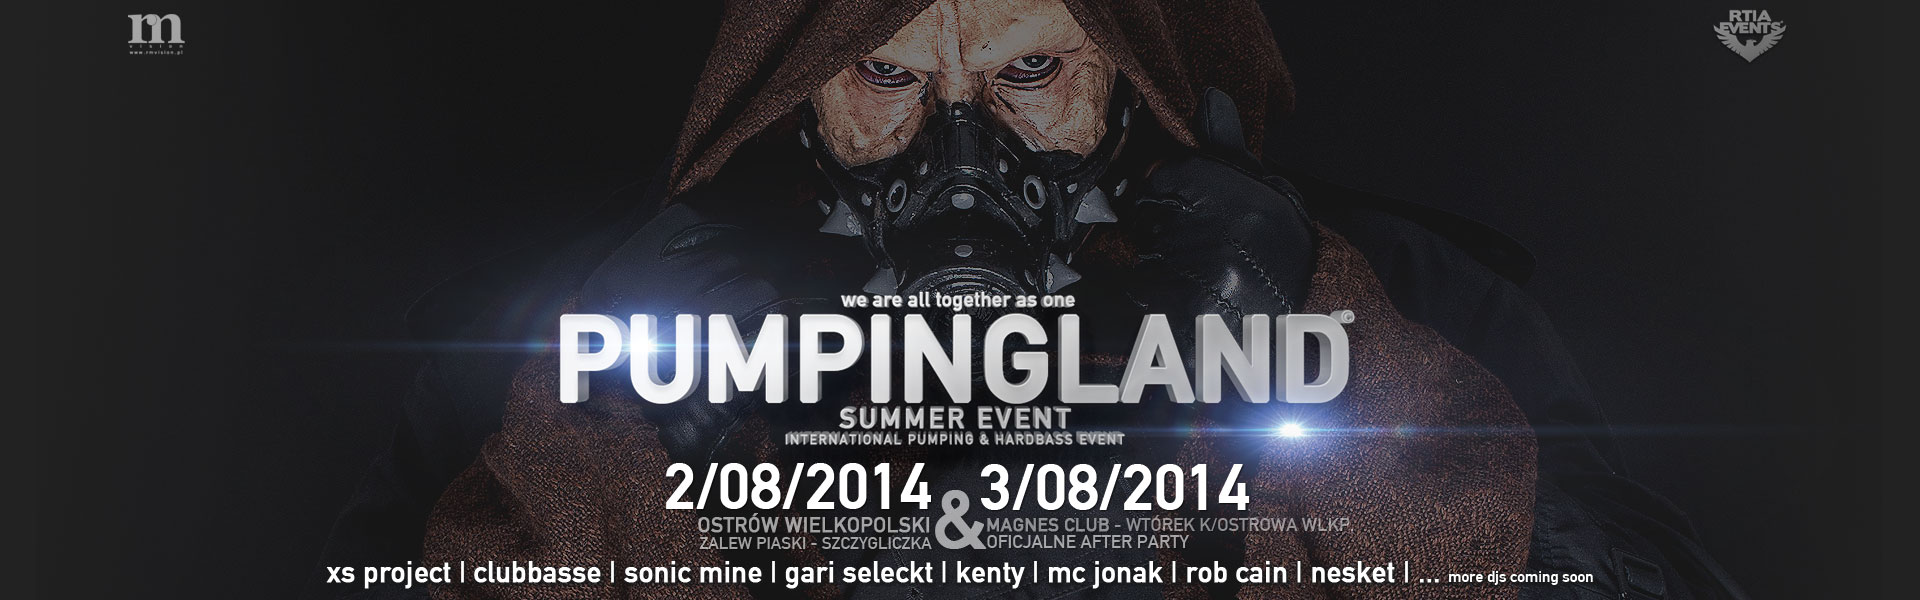 http://www.rtiaevents.pl/wp-content/uploads/2014/03/events-pumpingland-daty1.jpg